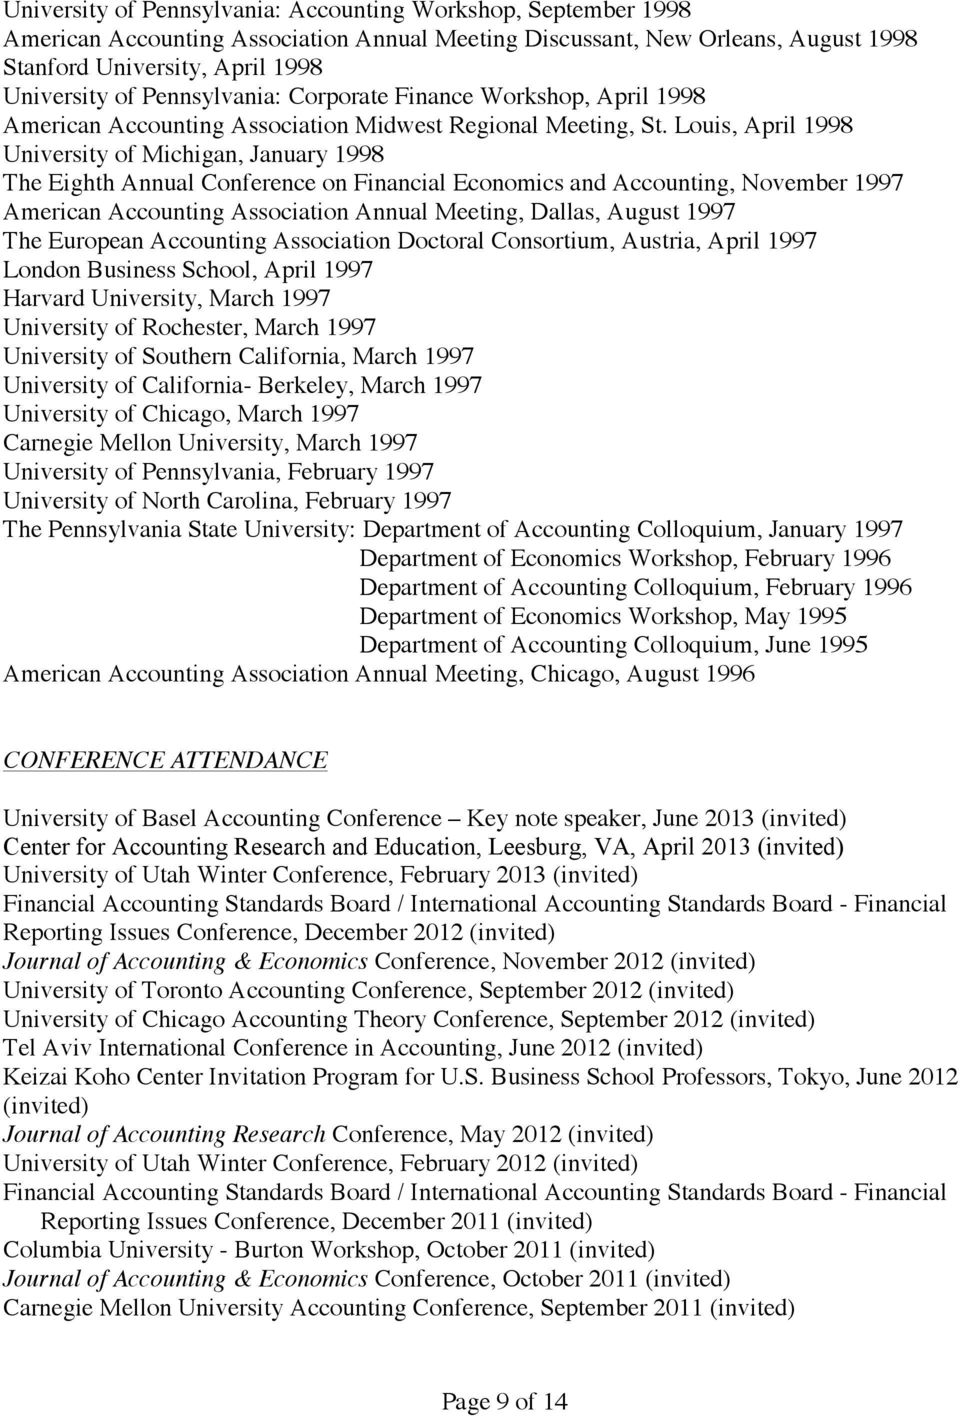 Louis, April 1998 University of Michigan, January 1998 The Eighth Annual Conference on Financial Economics and Accounting, November 1997 American Accounting Association Annual Meeting, Dallas, August